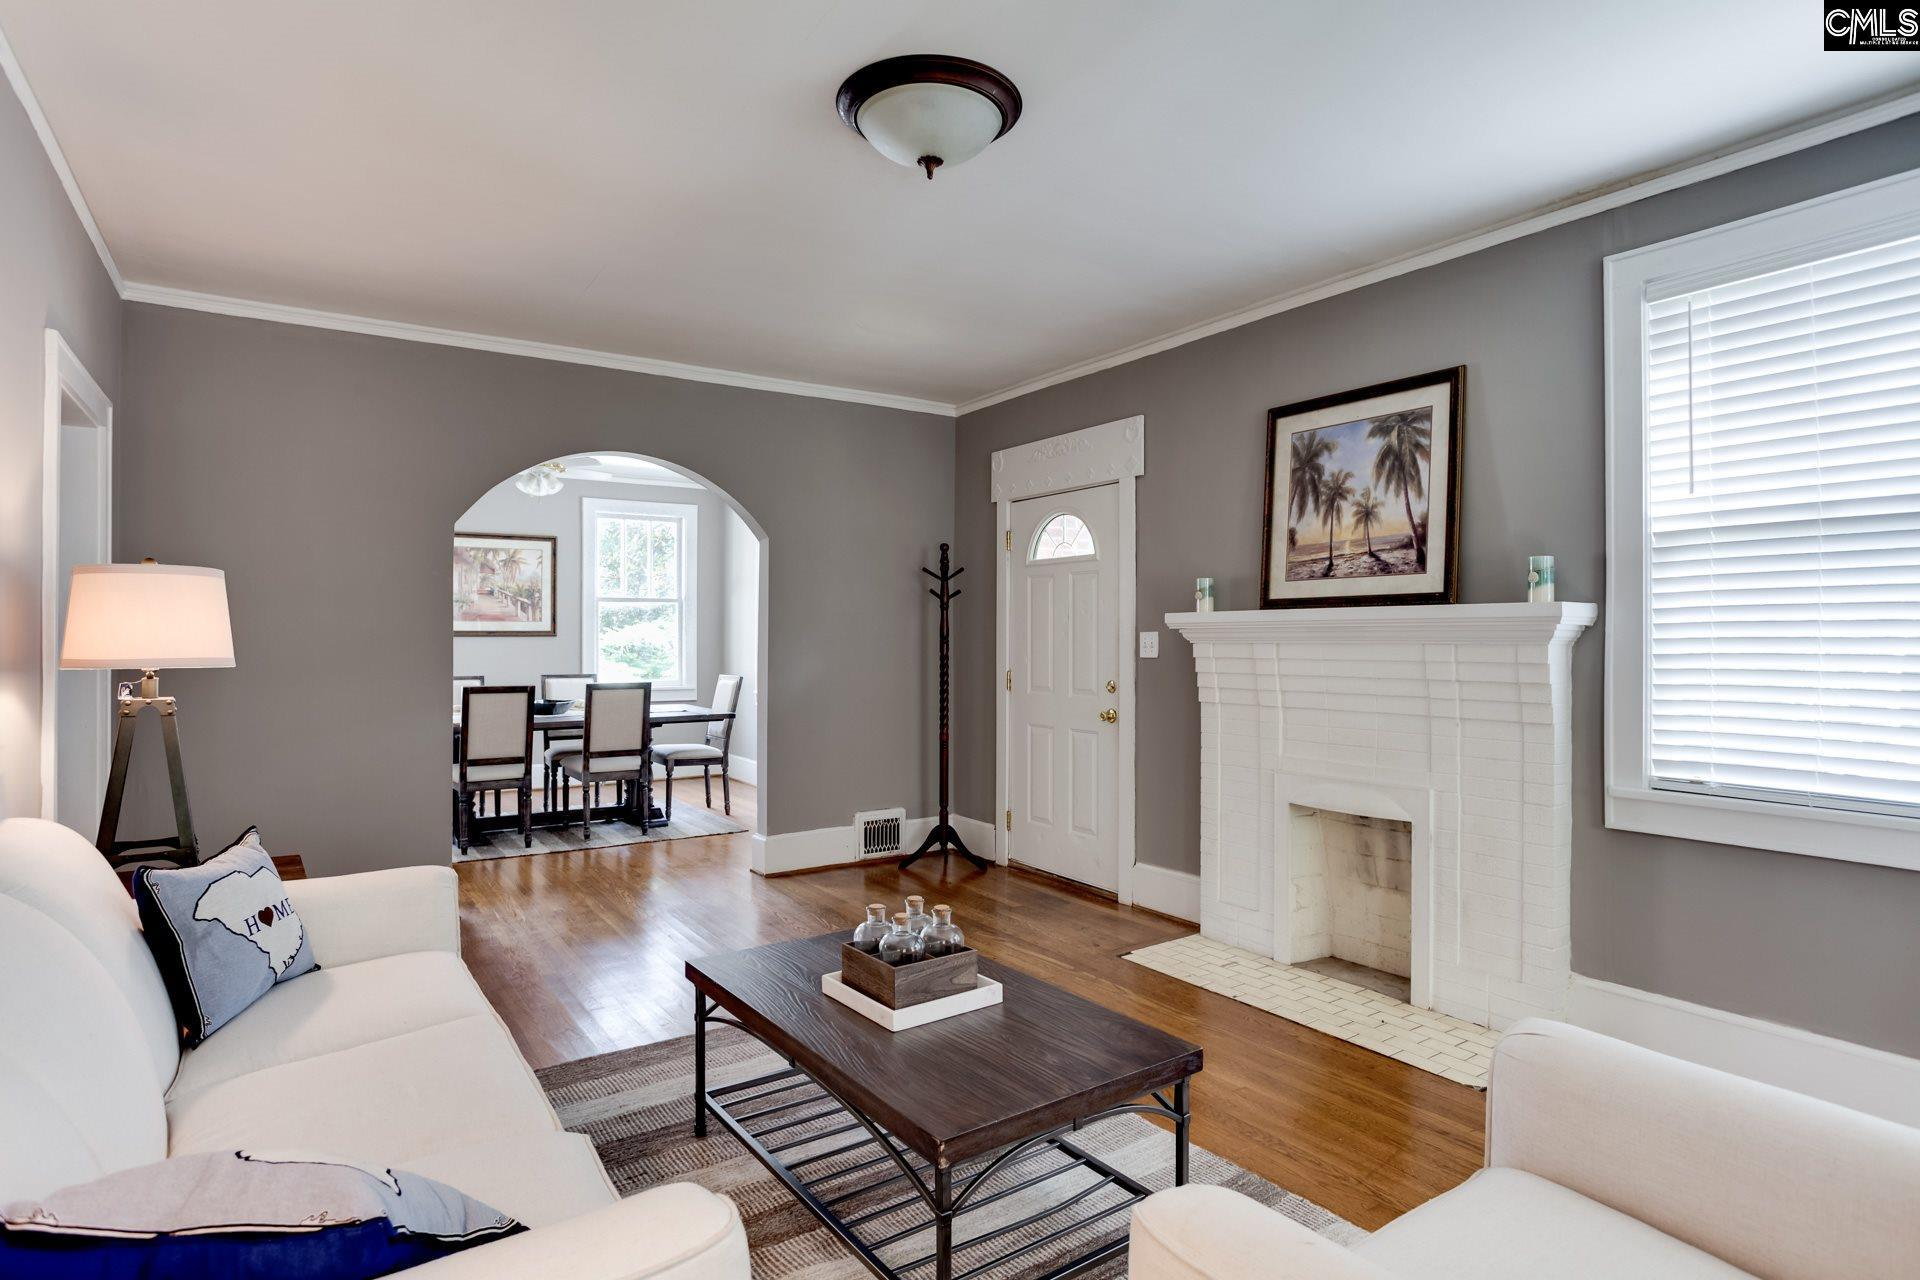 Living Room Sets Columbia Sc Listing 311 S Harden Mls 430608 Fairfax Realty